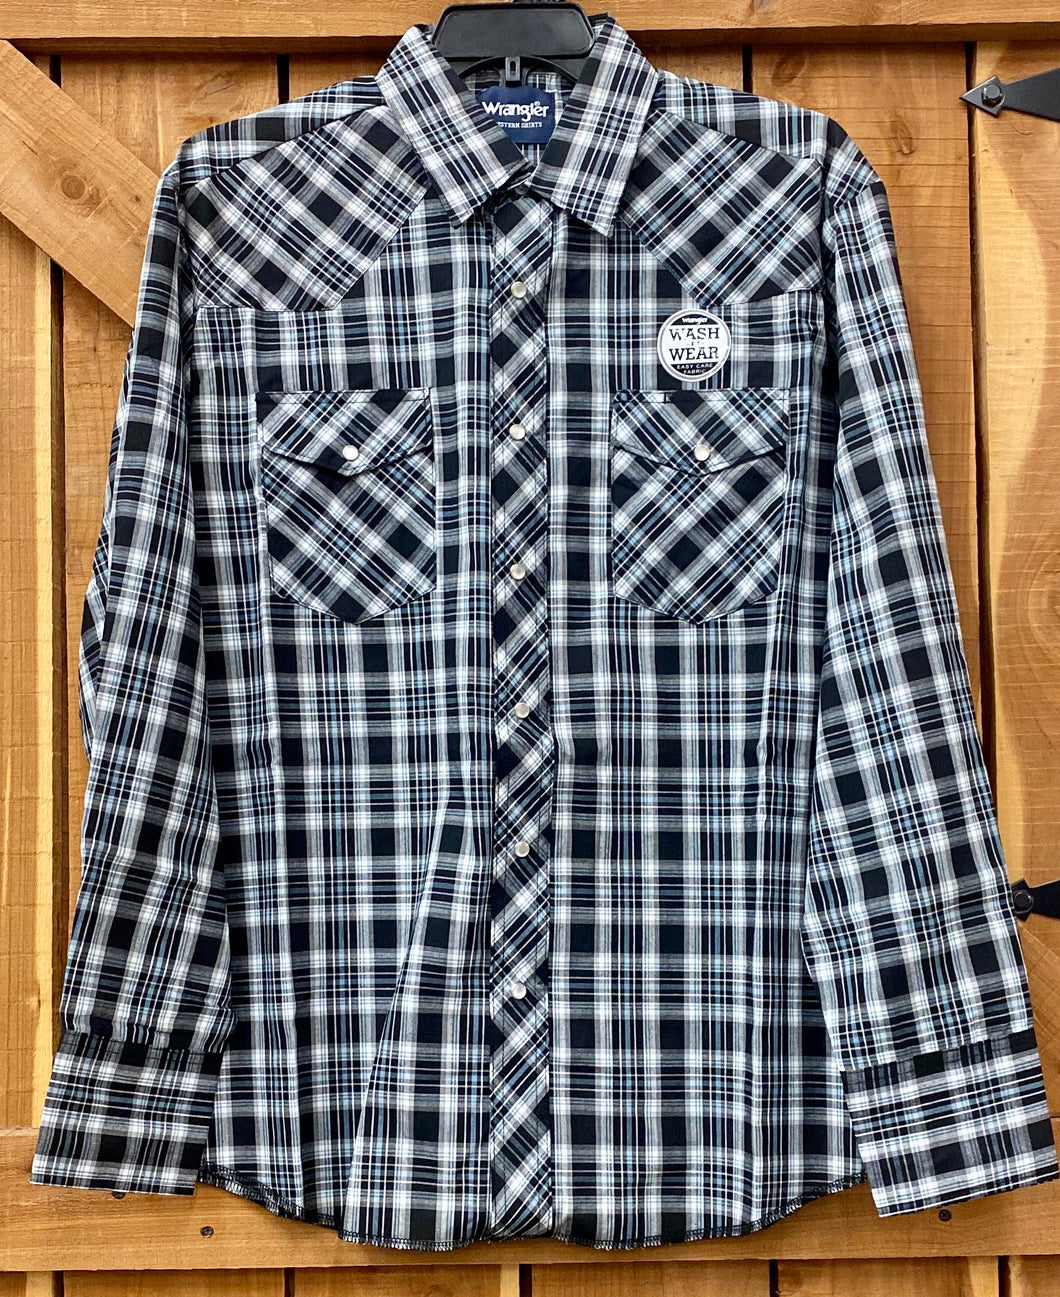 Wrangler Long Sleeve Shirt